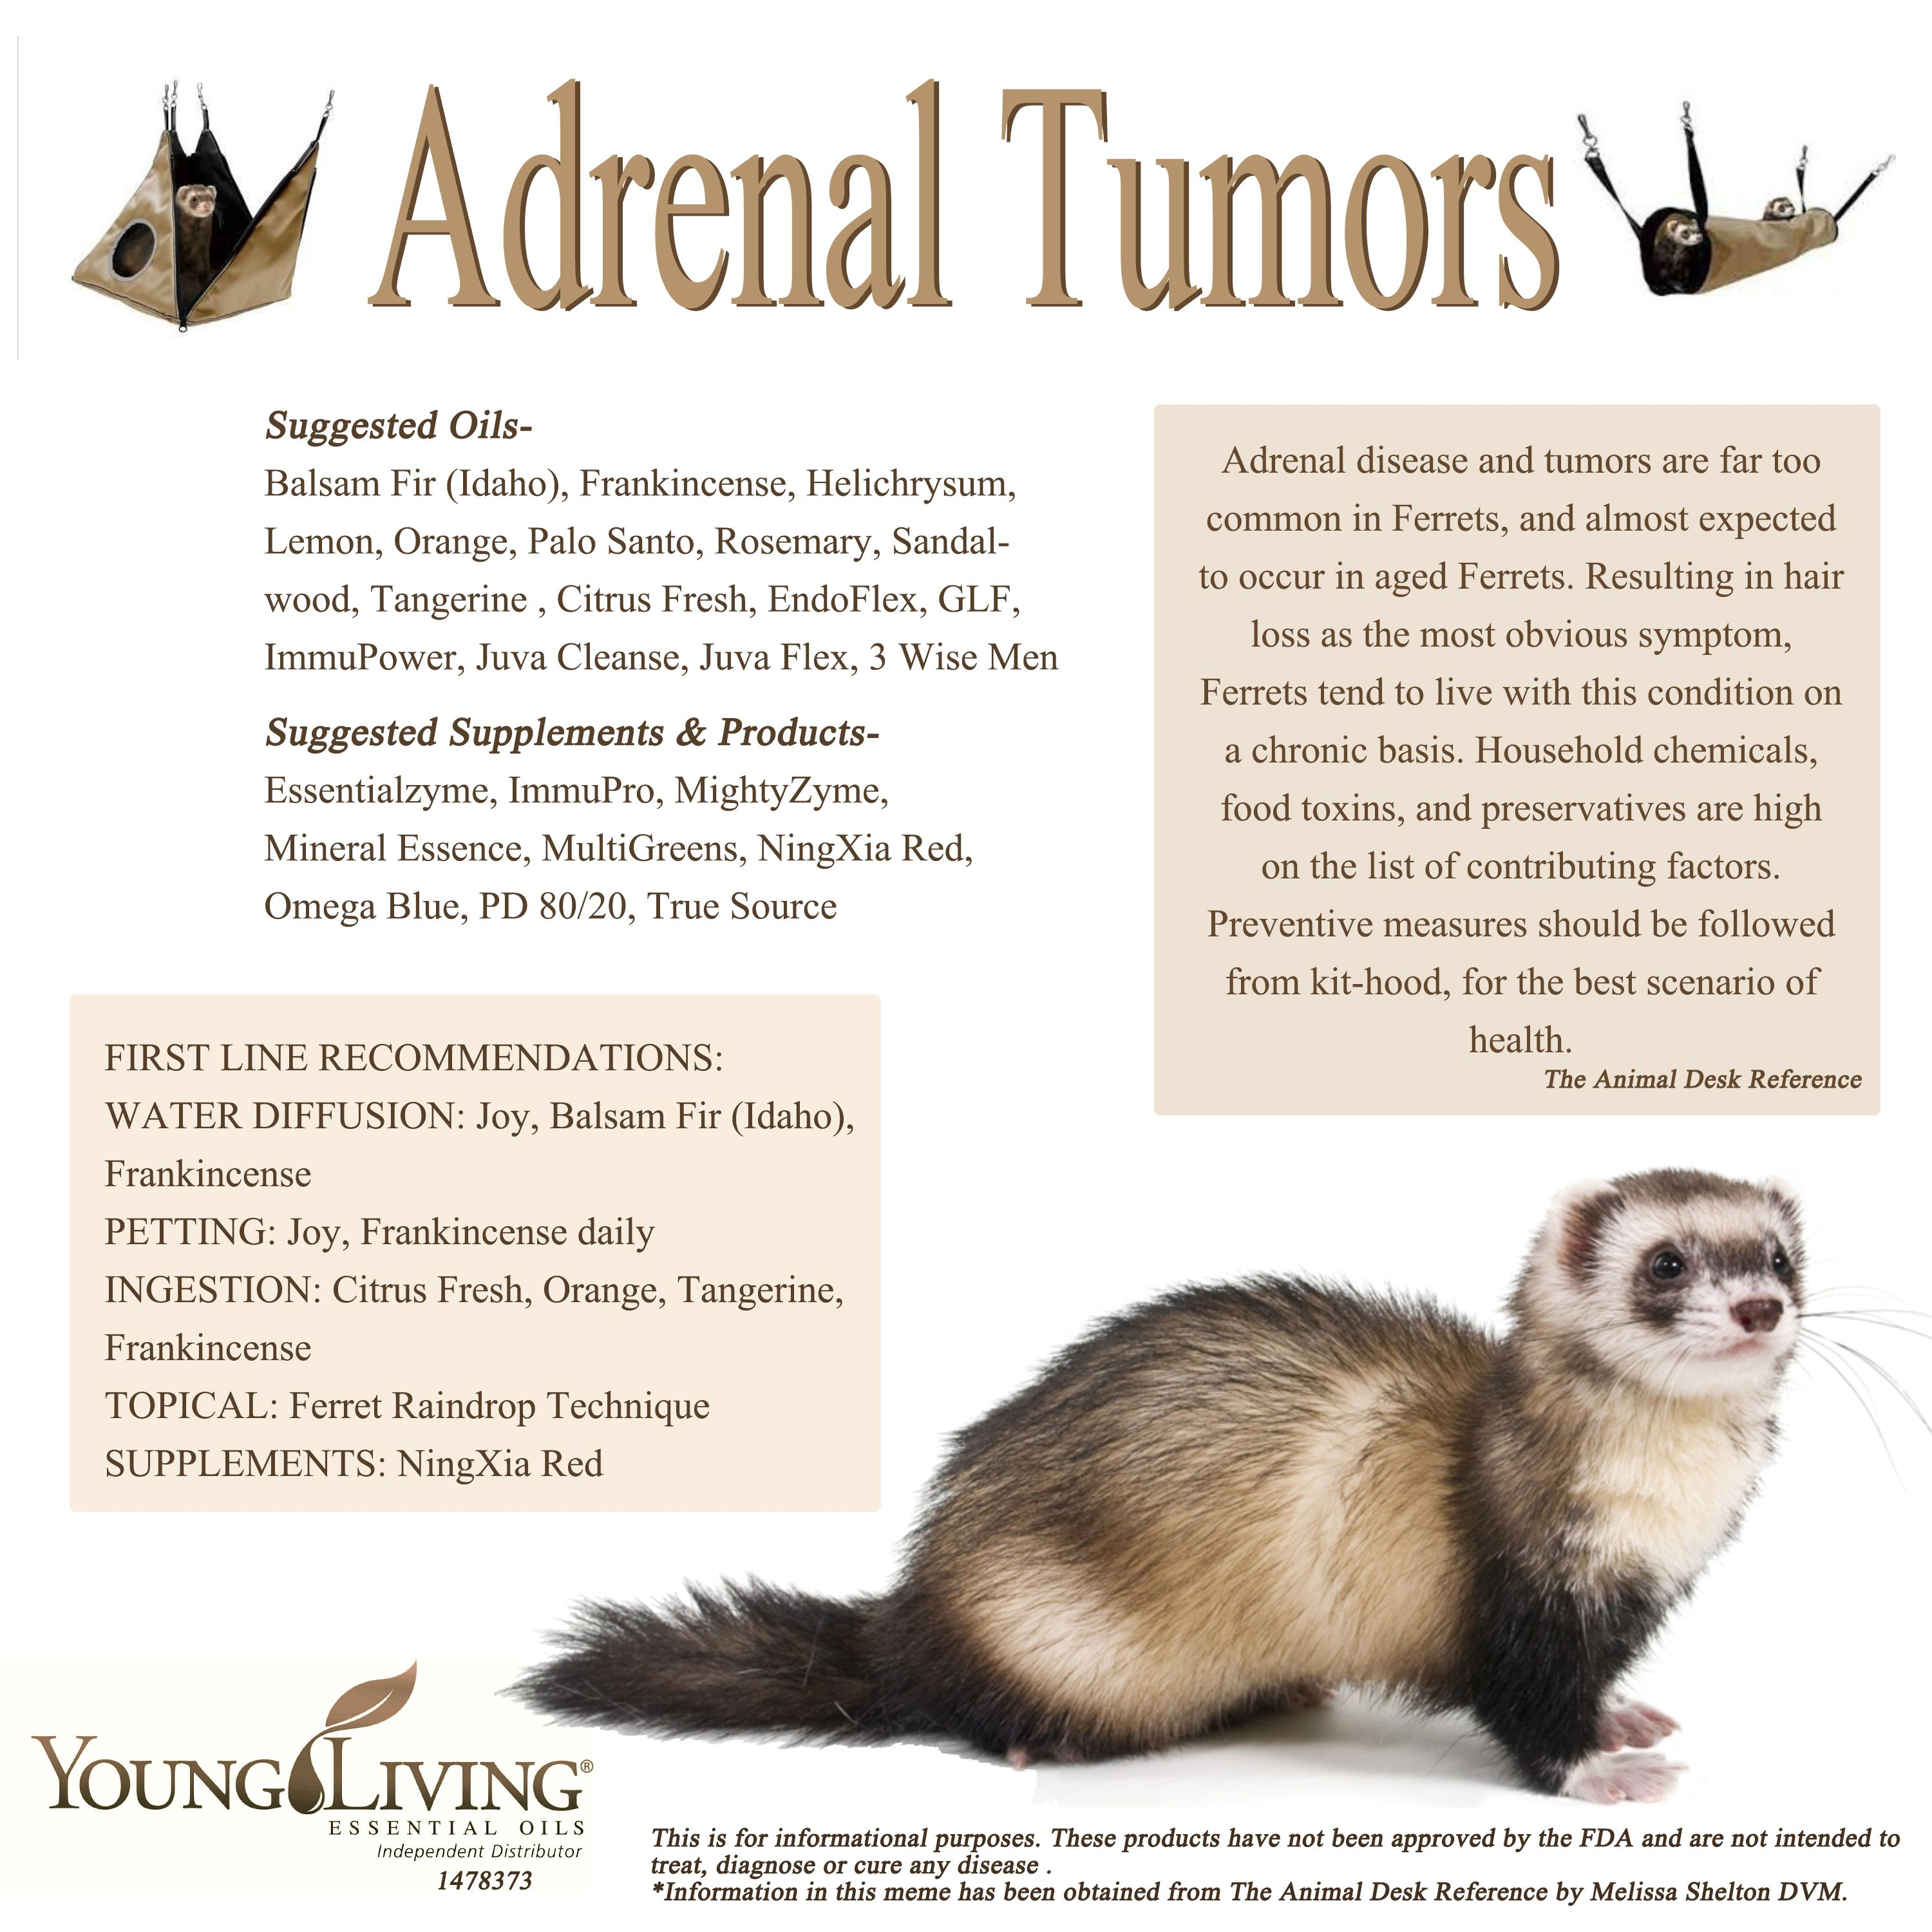 Young Living Essential Oils Adrenal Tumors In A Ferret